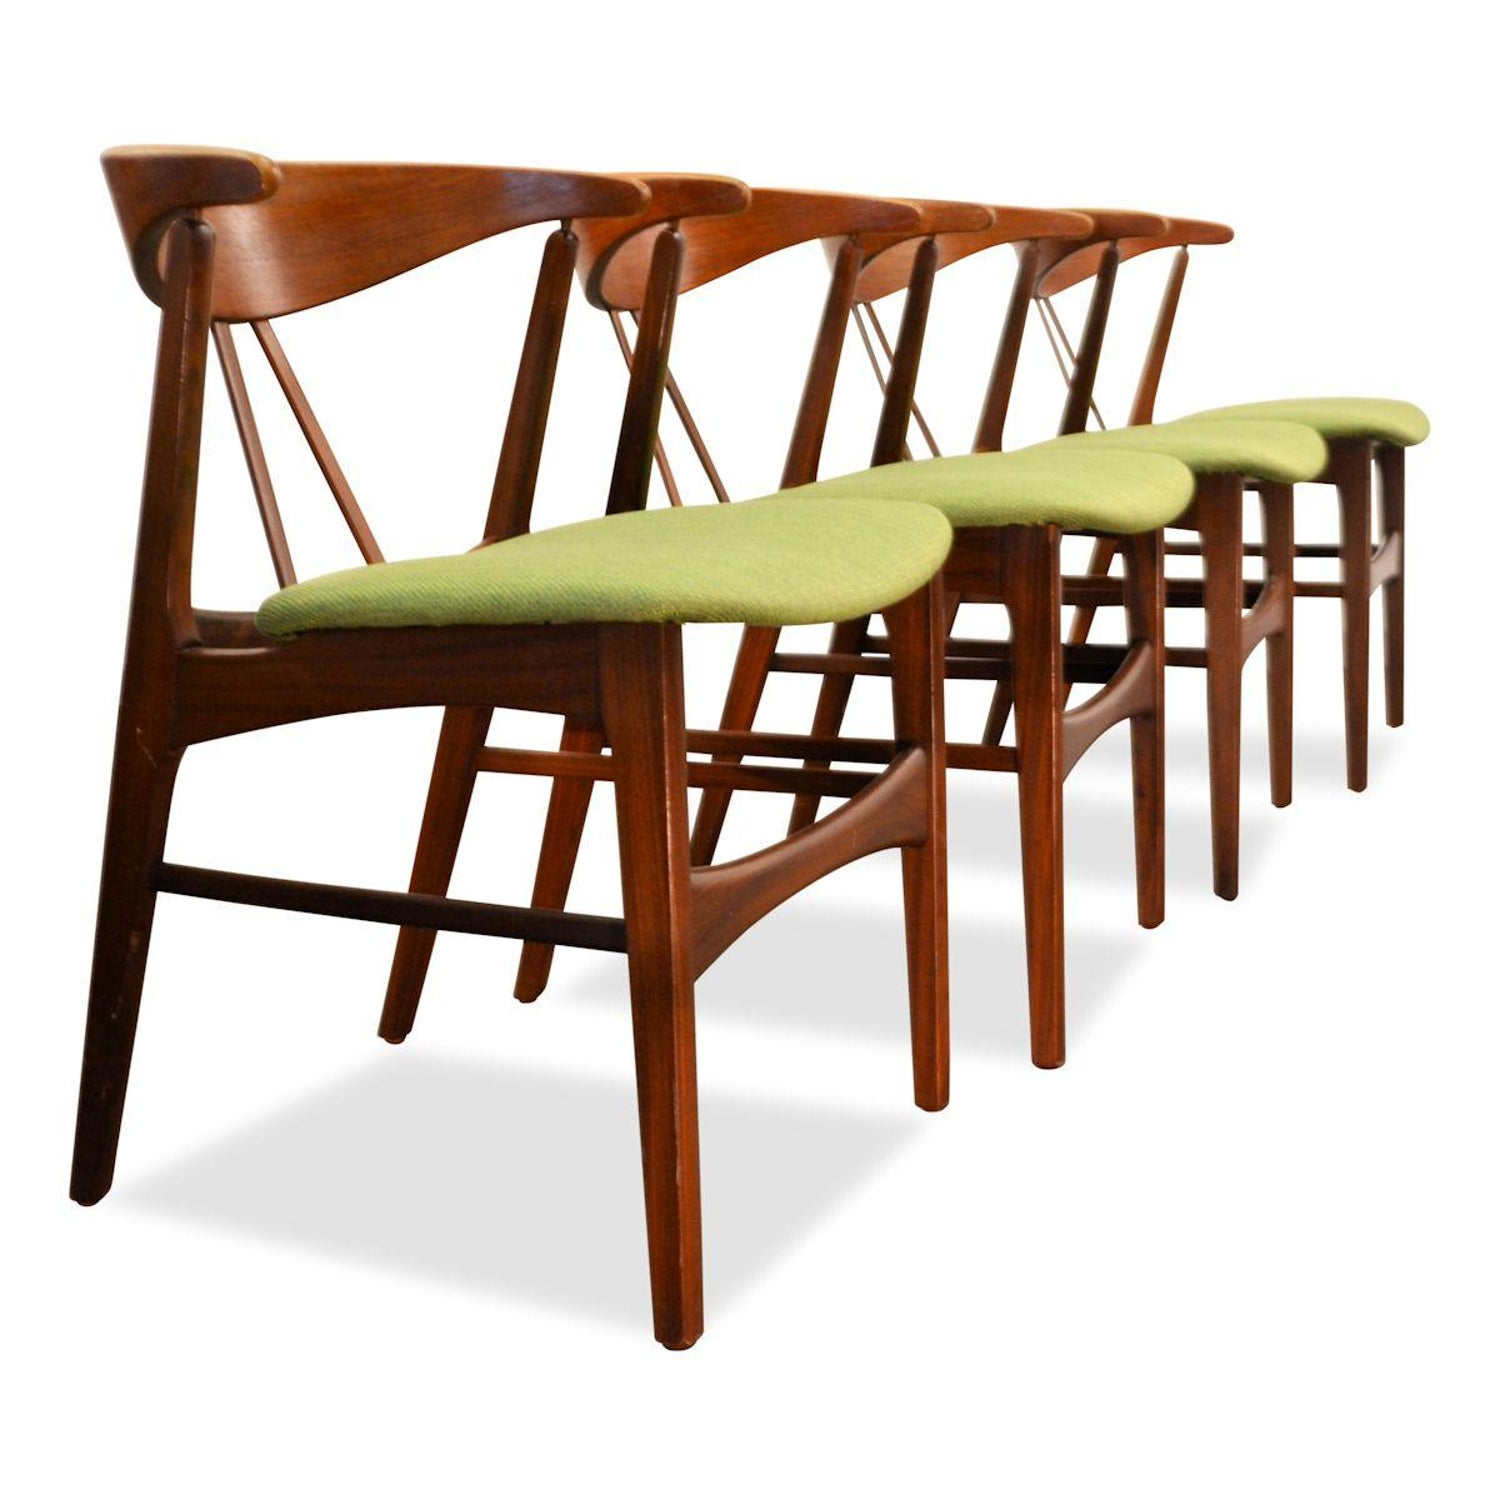 7a49a323f715 Vintage Danish Design Teak/Oak Dining Chairs, Set of 4 at 1stdibs